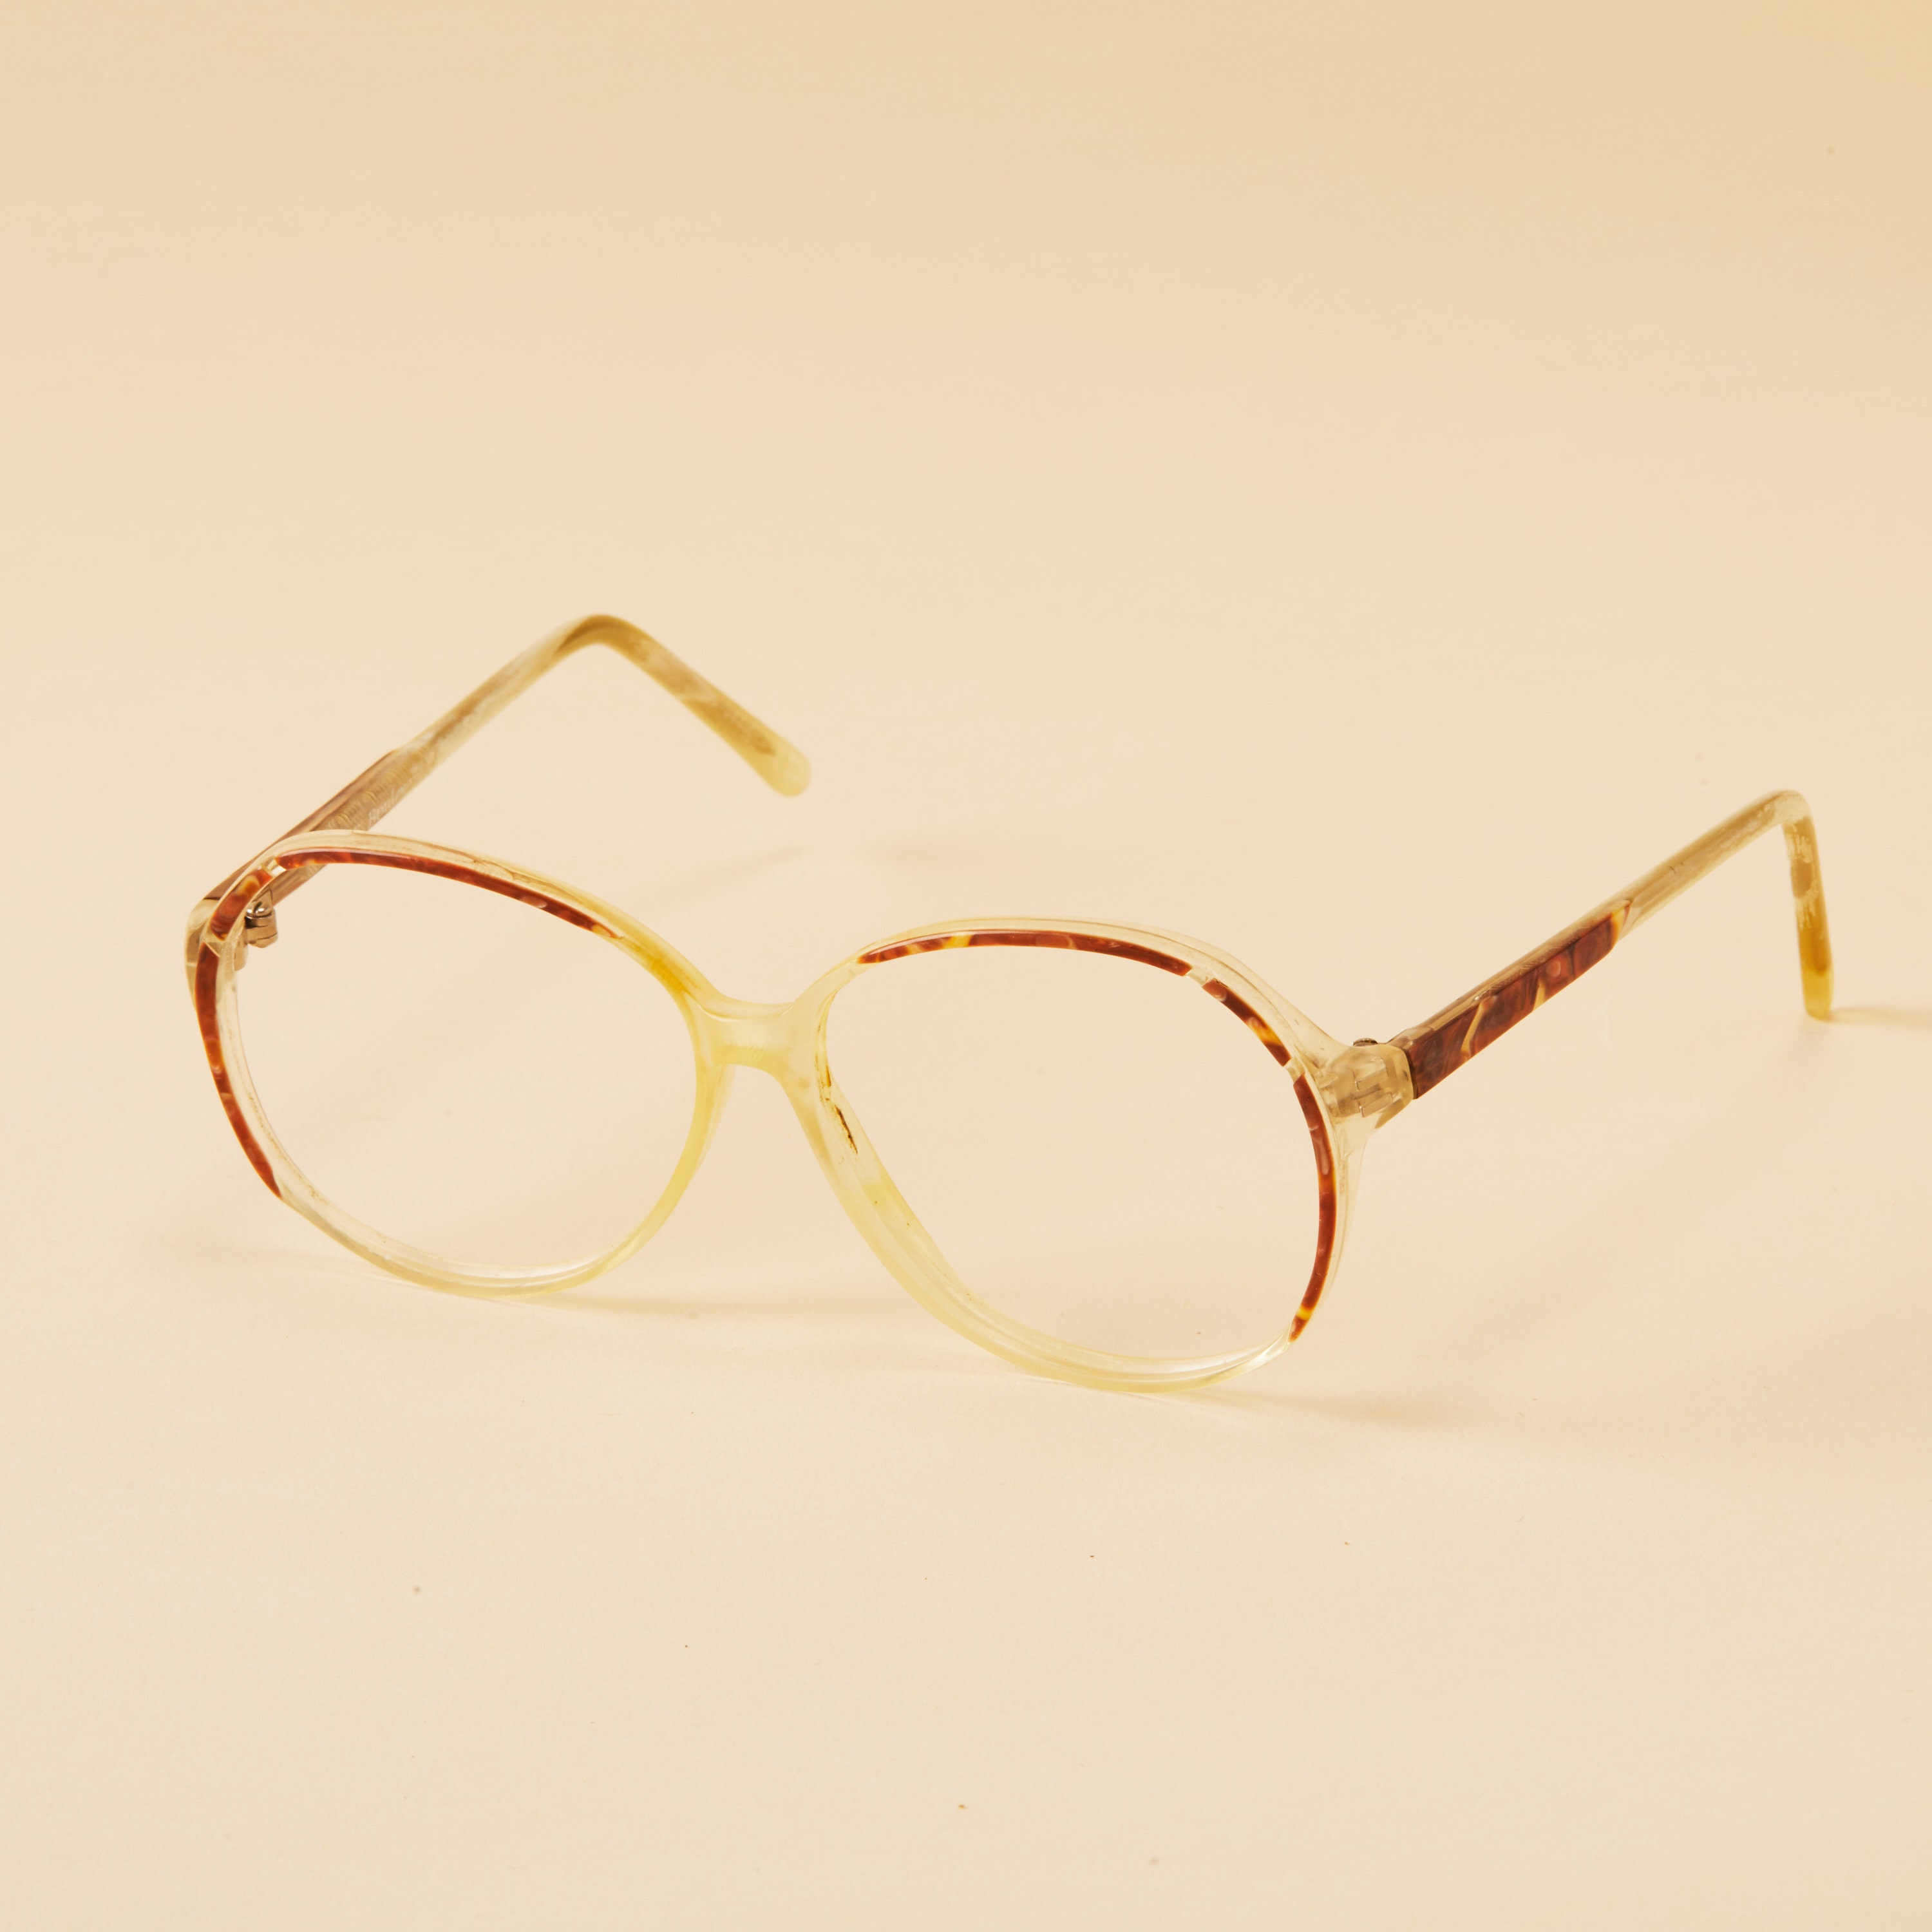 a04fe1d6e33 Vintage Oversized Frames Wilshire Designs Pink Yellow